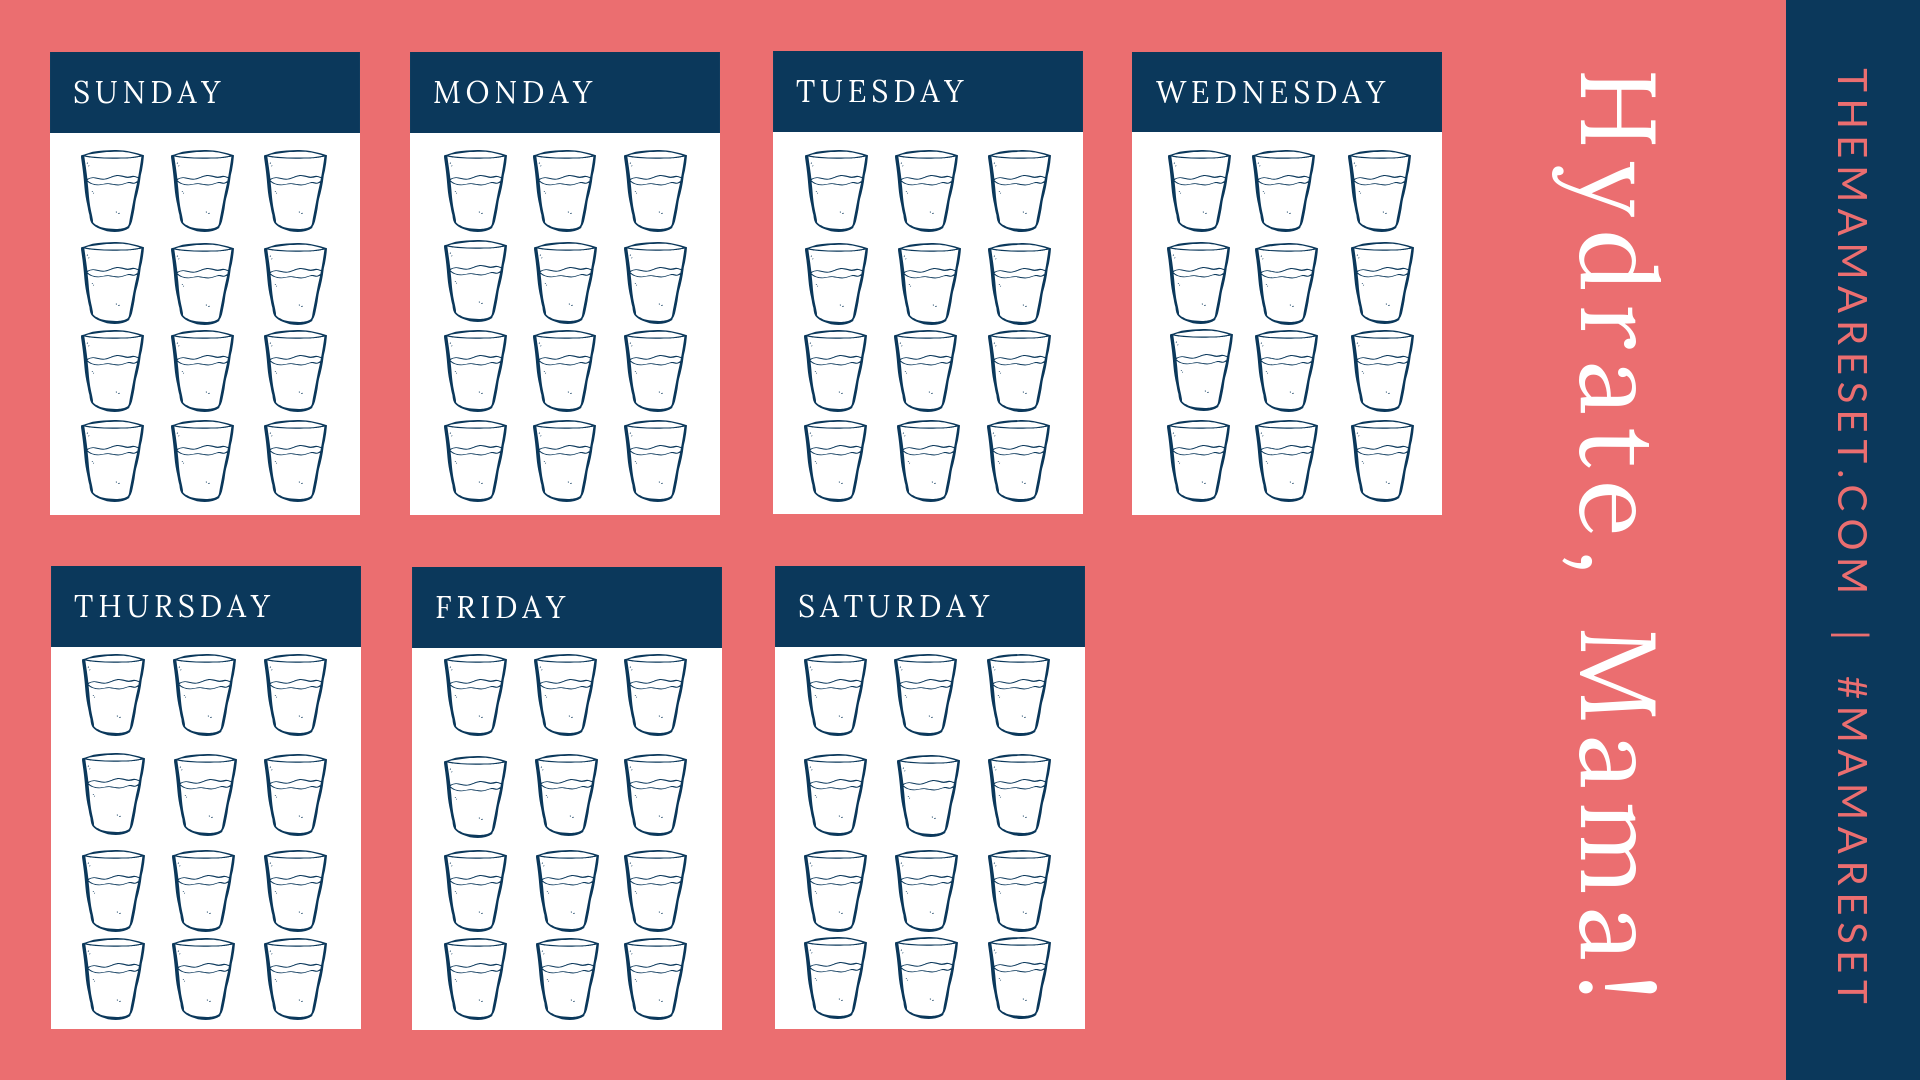 hydration-printable.png